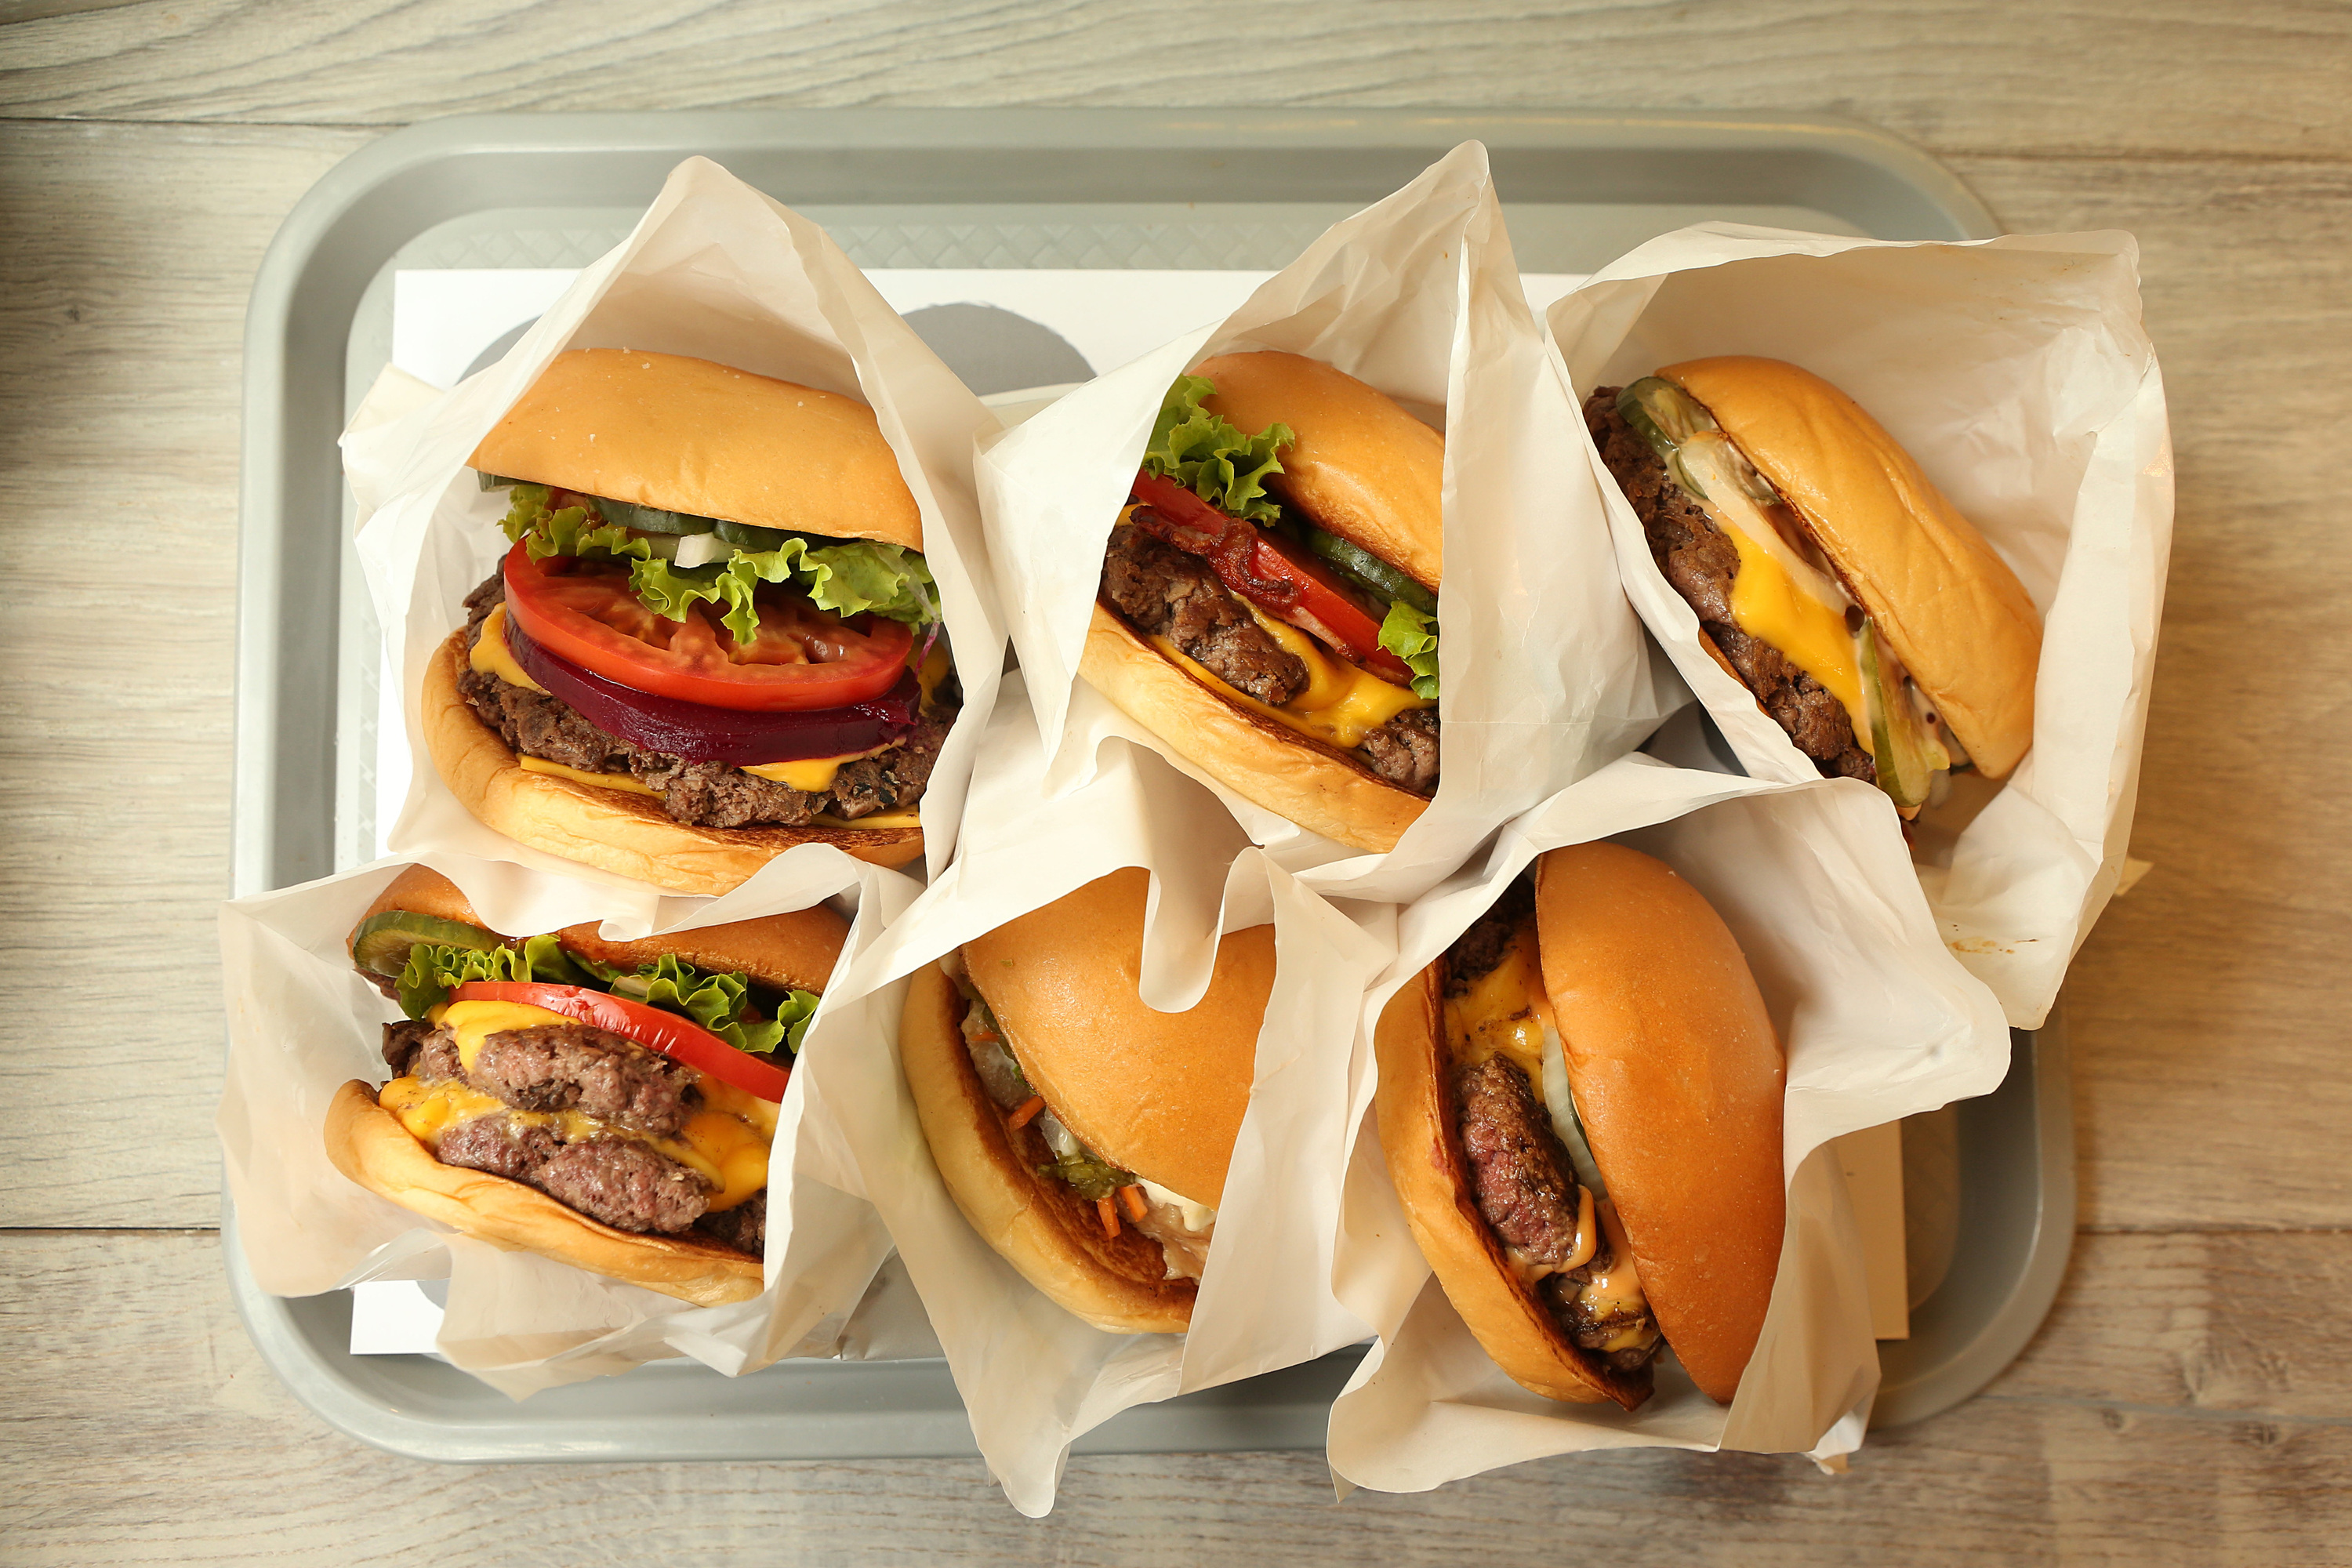 Melbourne's favourite local fast food joints